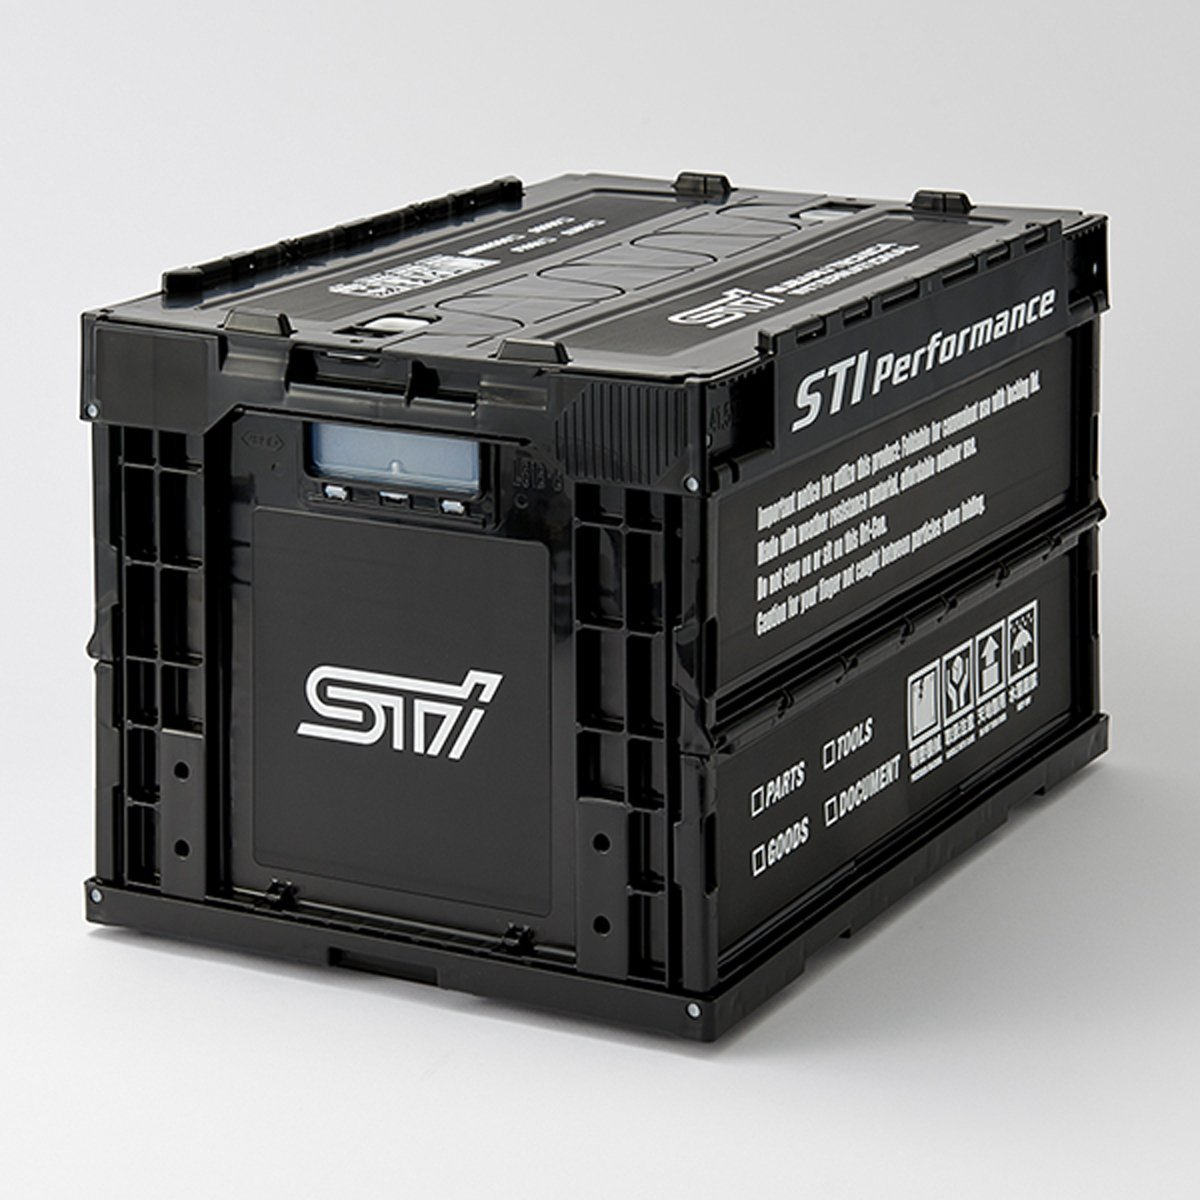 SUBARU STI Authentic Folding Container Case Storage Box ...